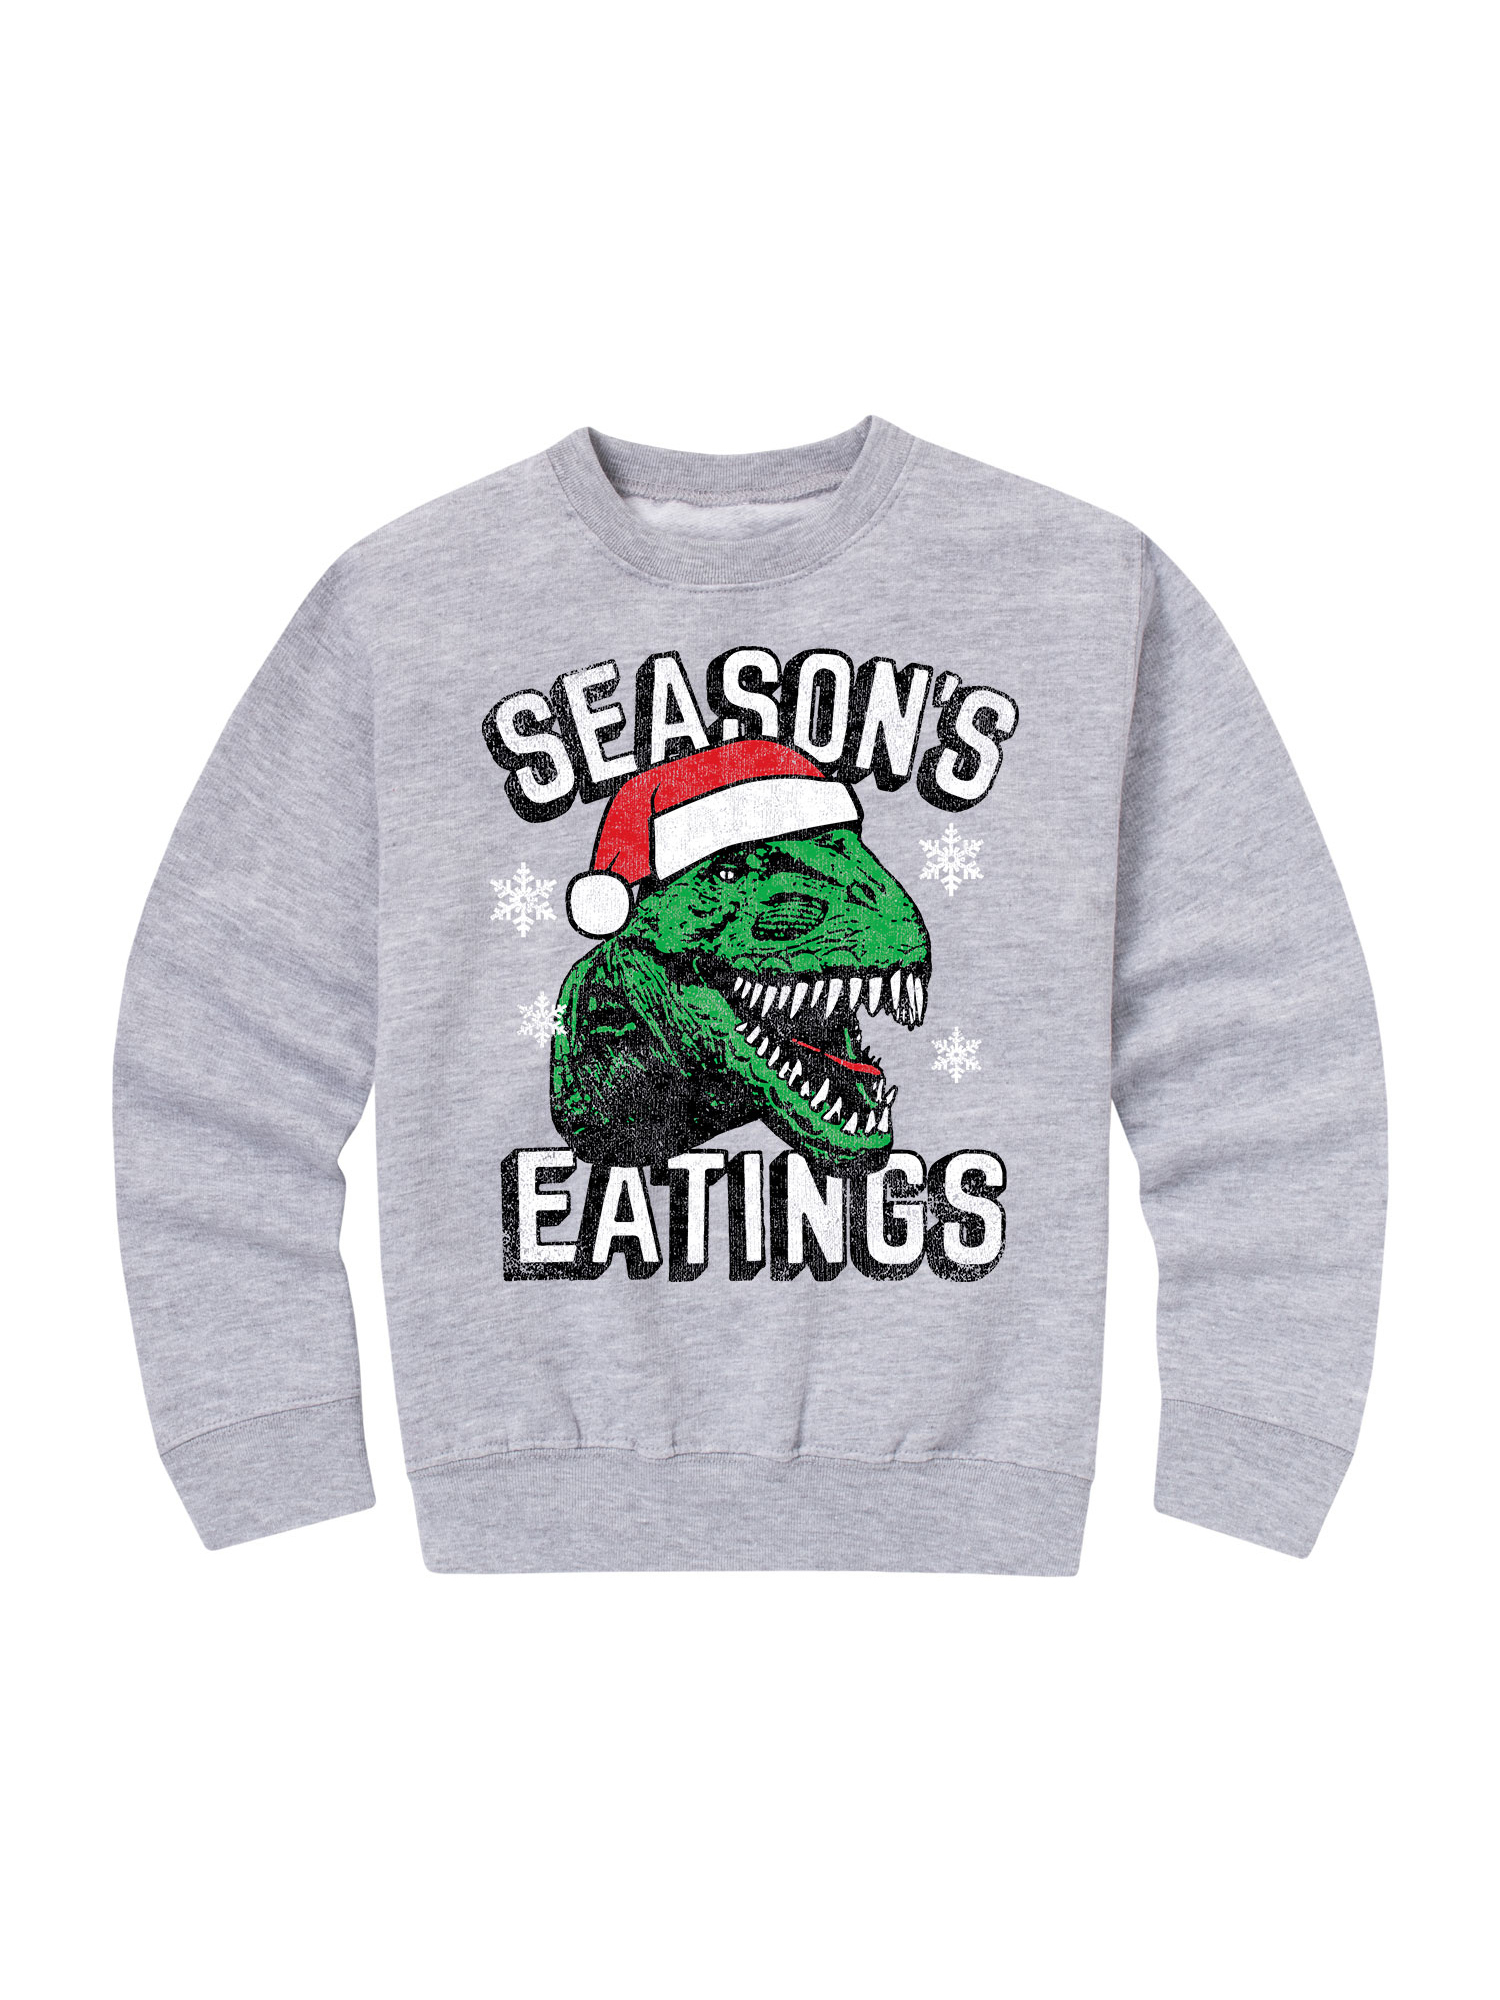 Seasons Eatings - Toddler Crew Fleece